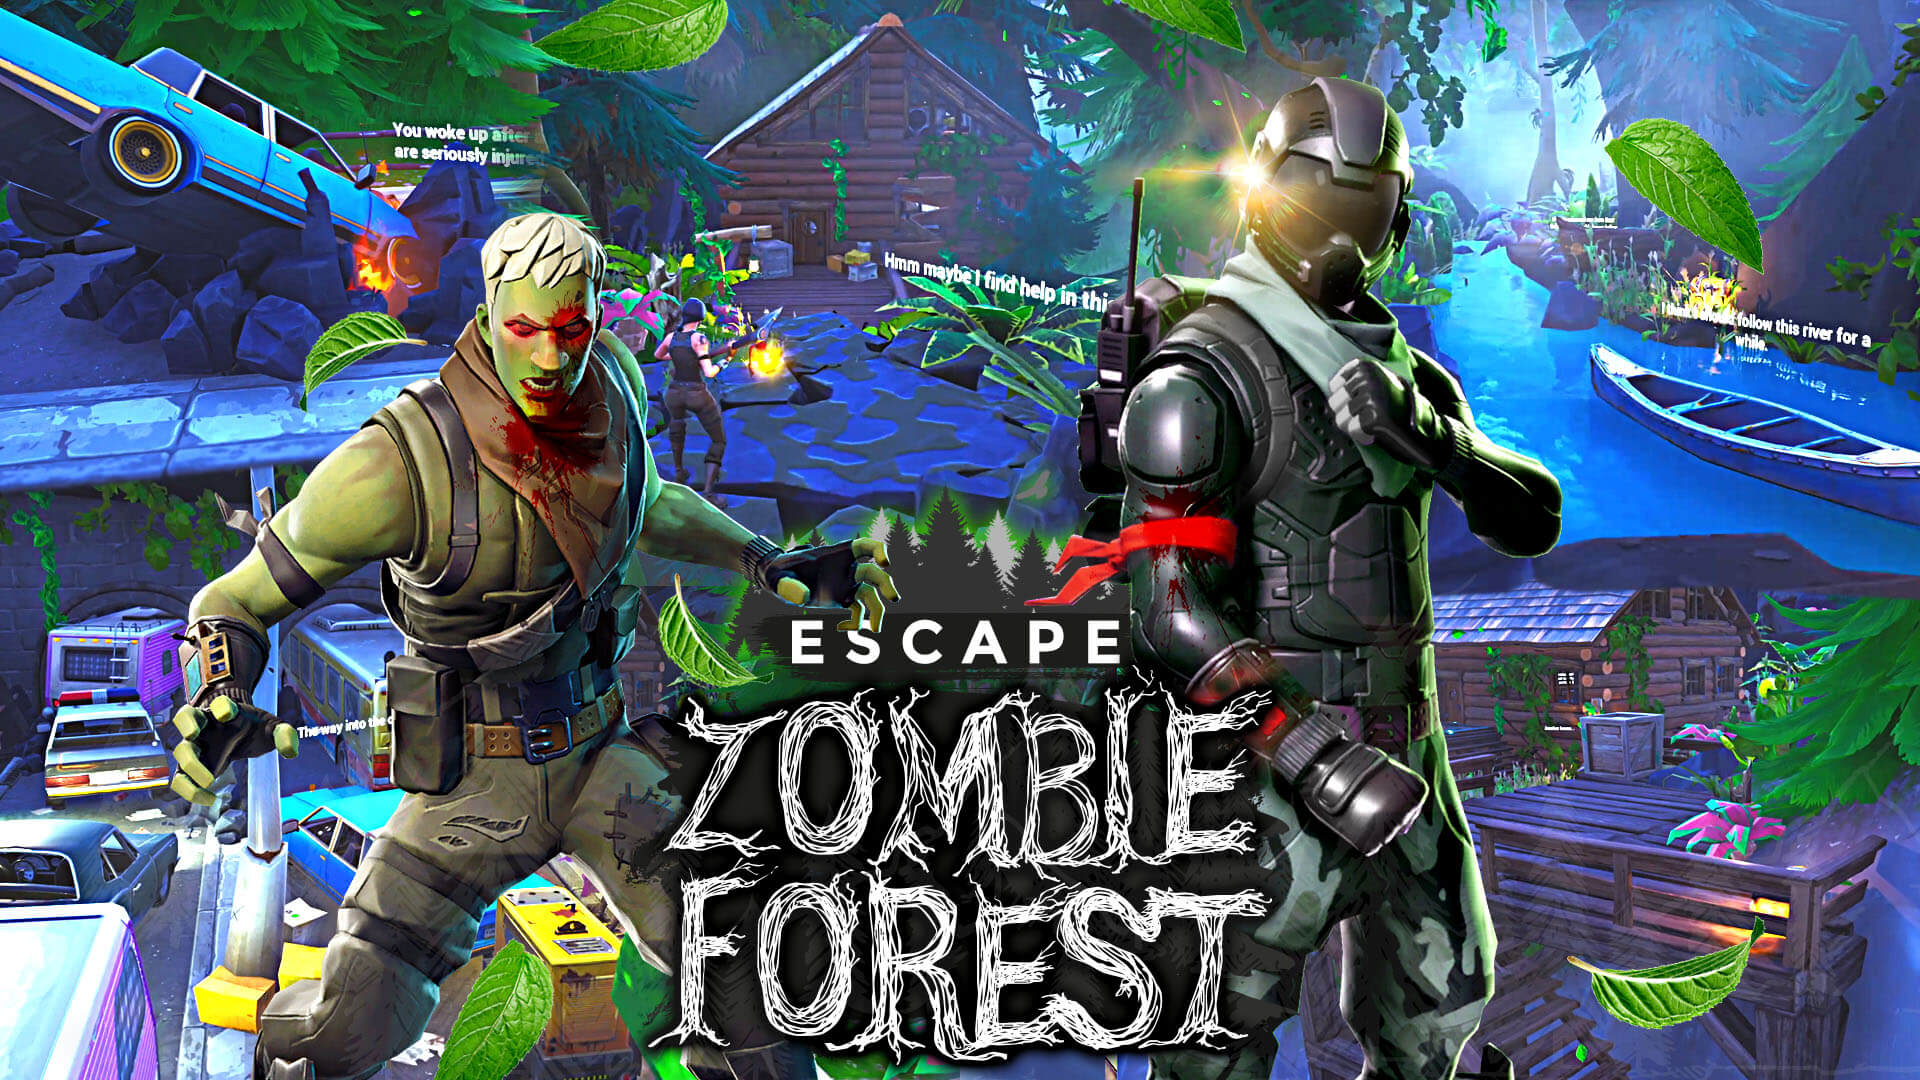 ESCAPE ZOMBIE FOREST